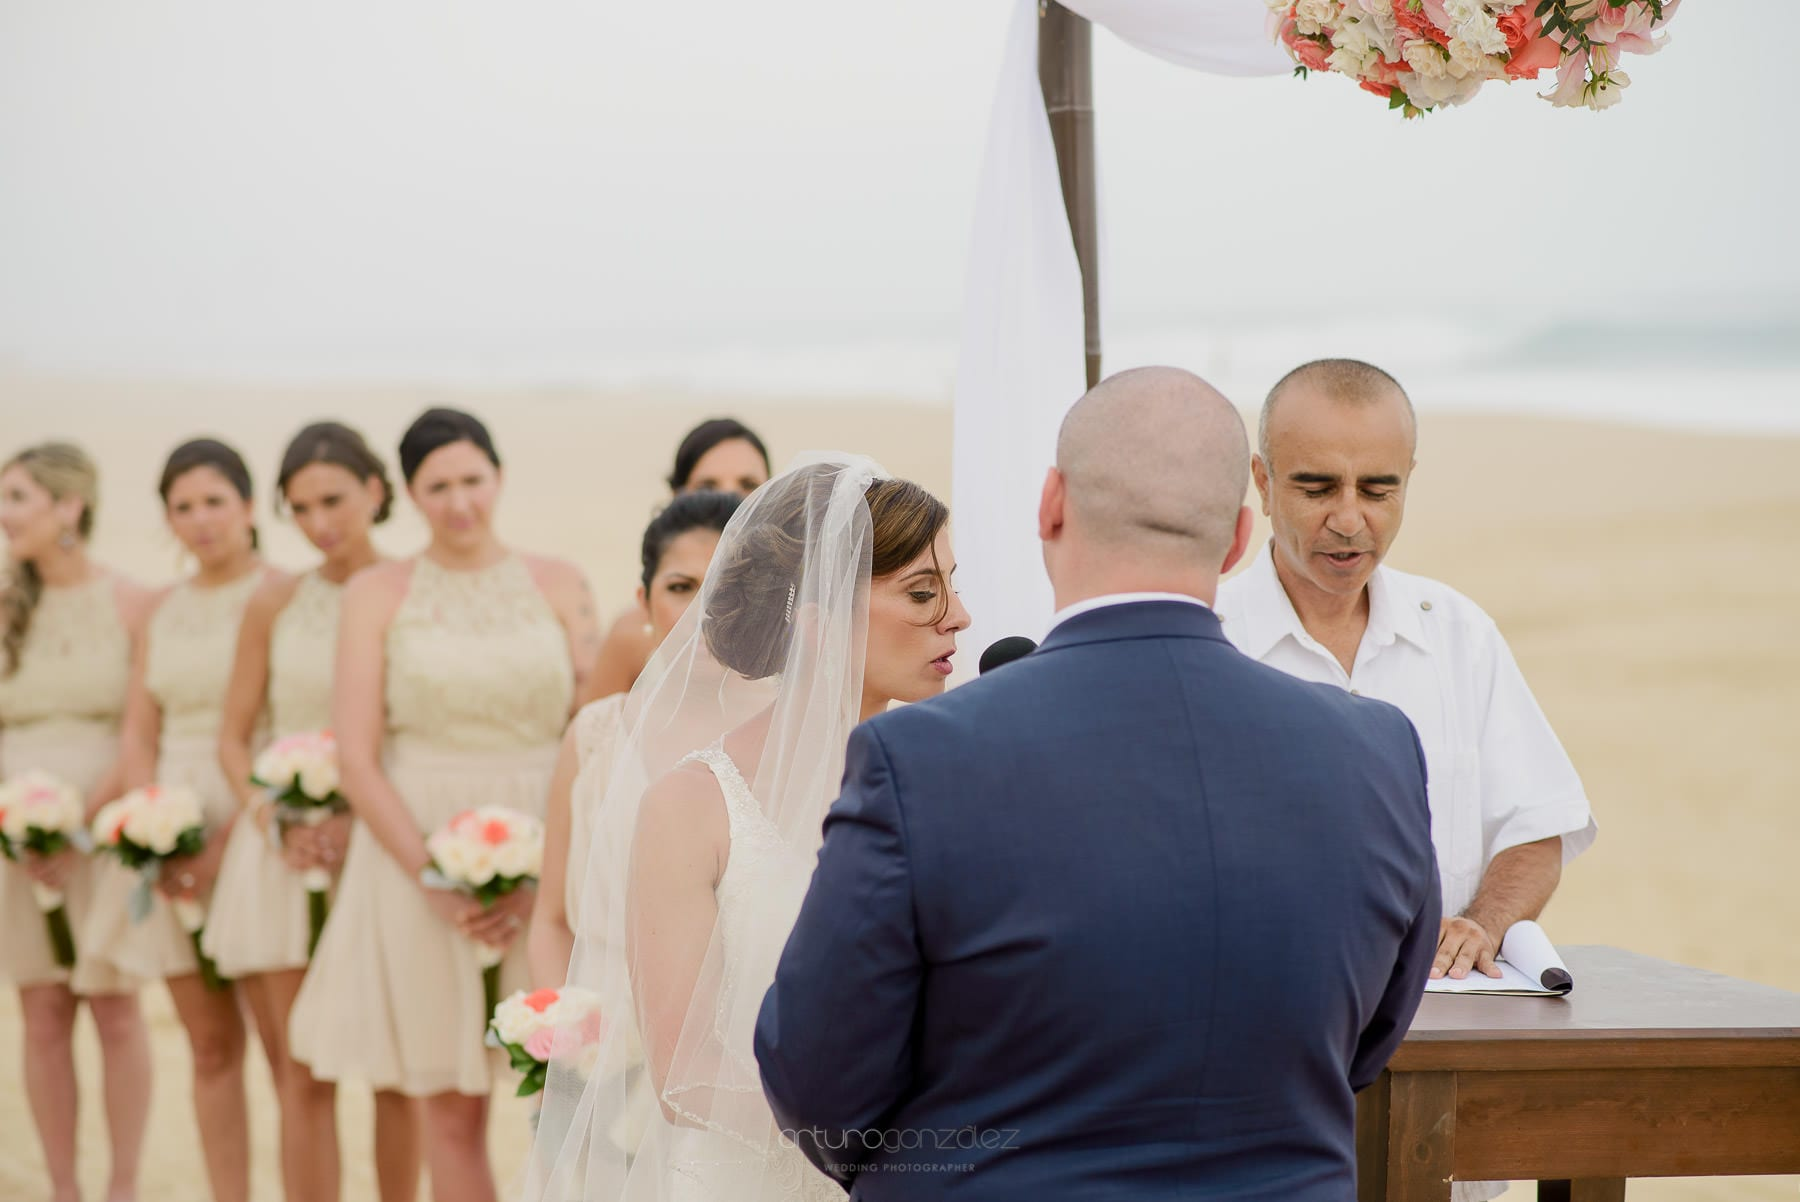 wedding-photos-pueblo-bonito-sunset-beach-4611